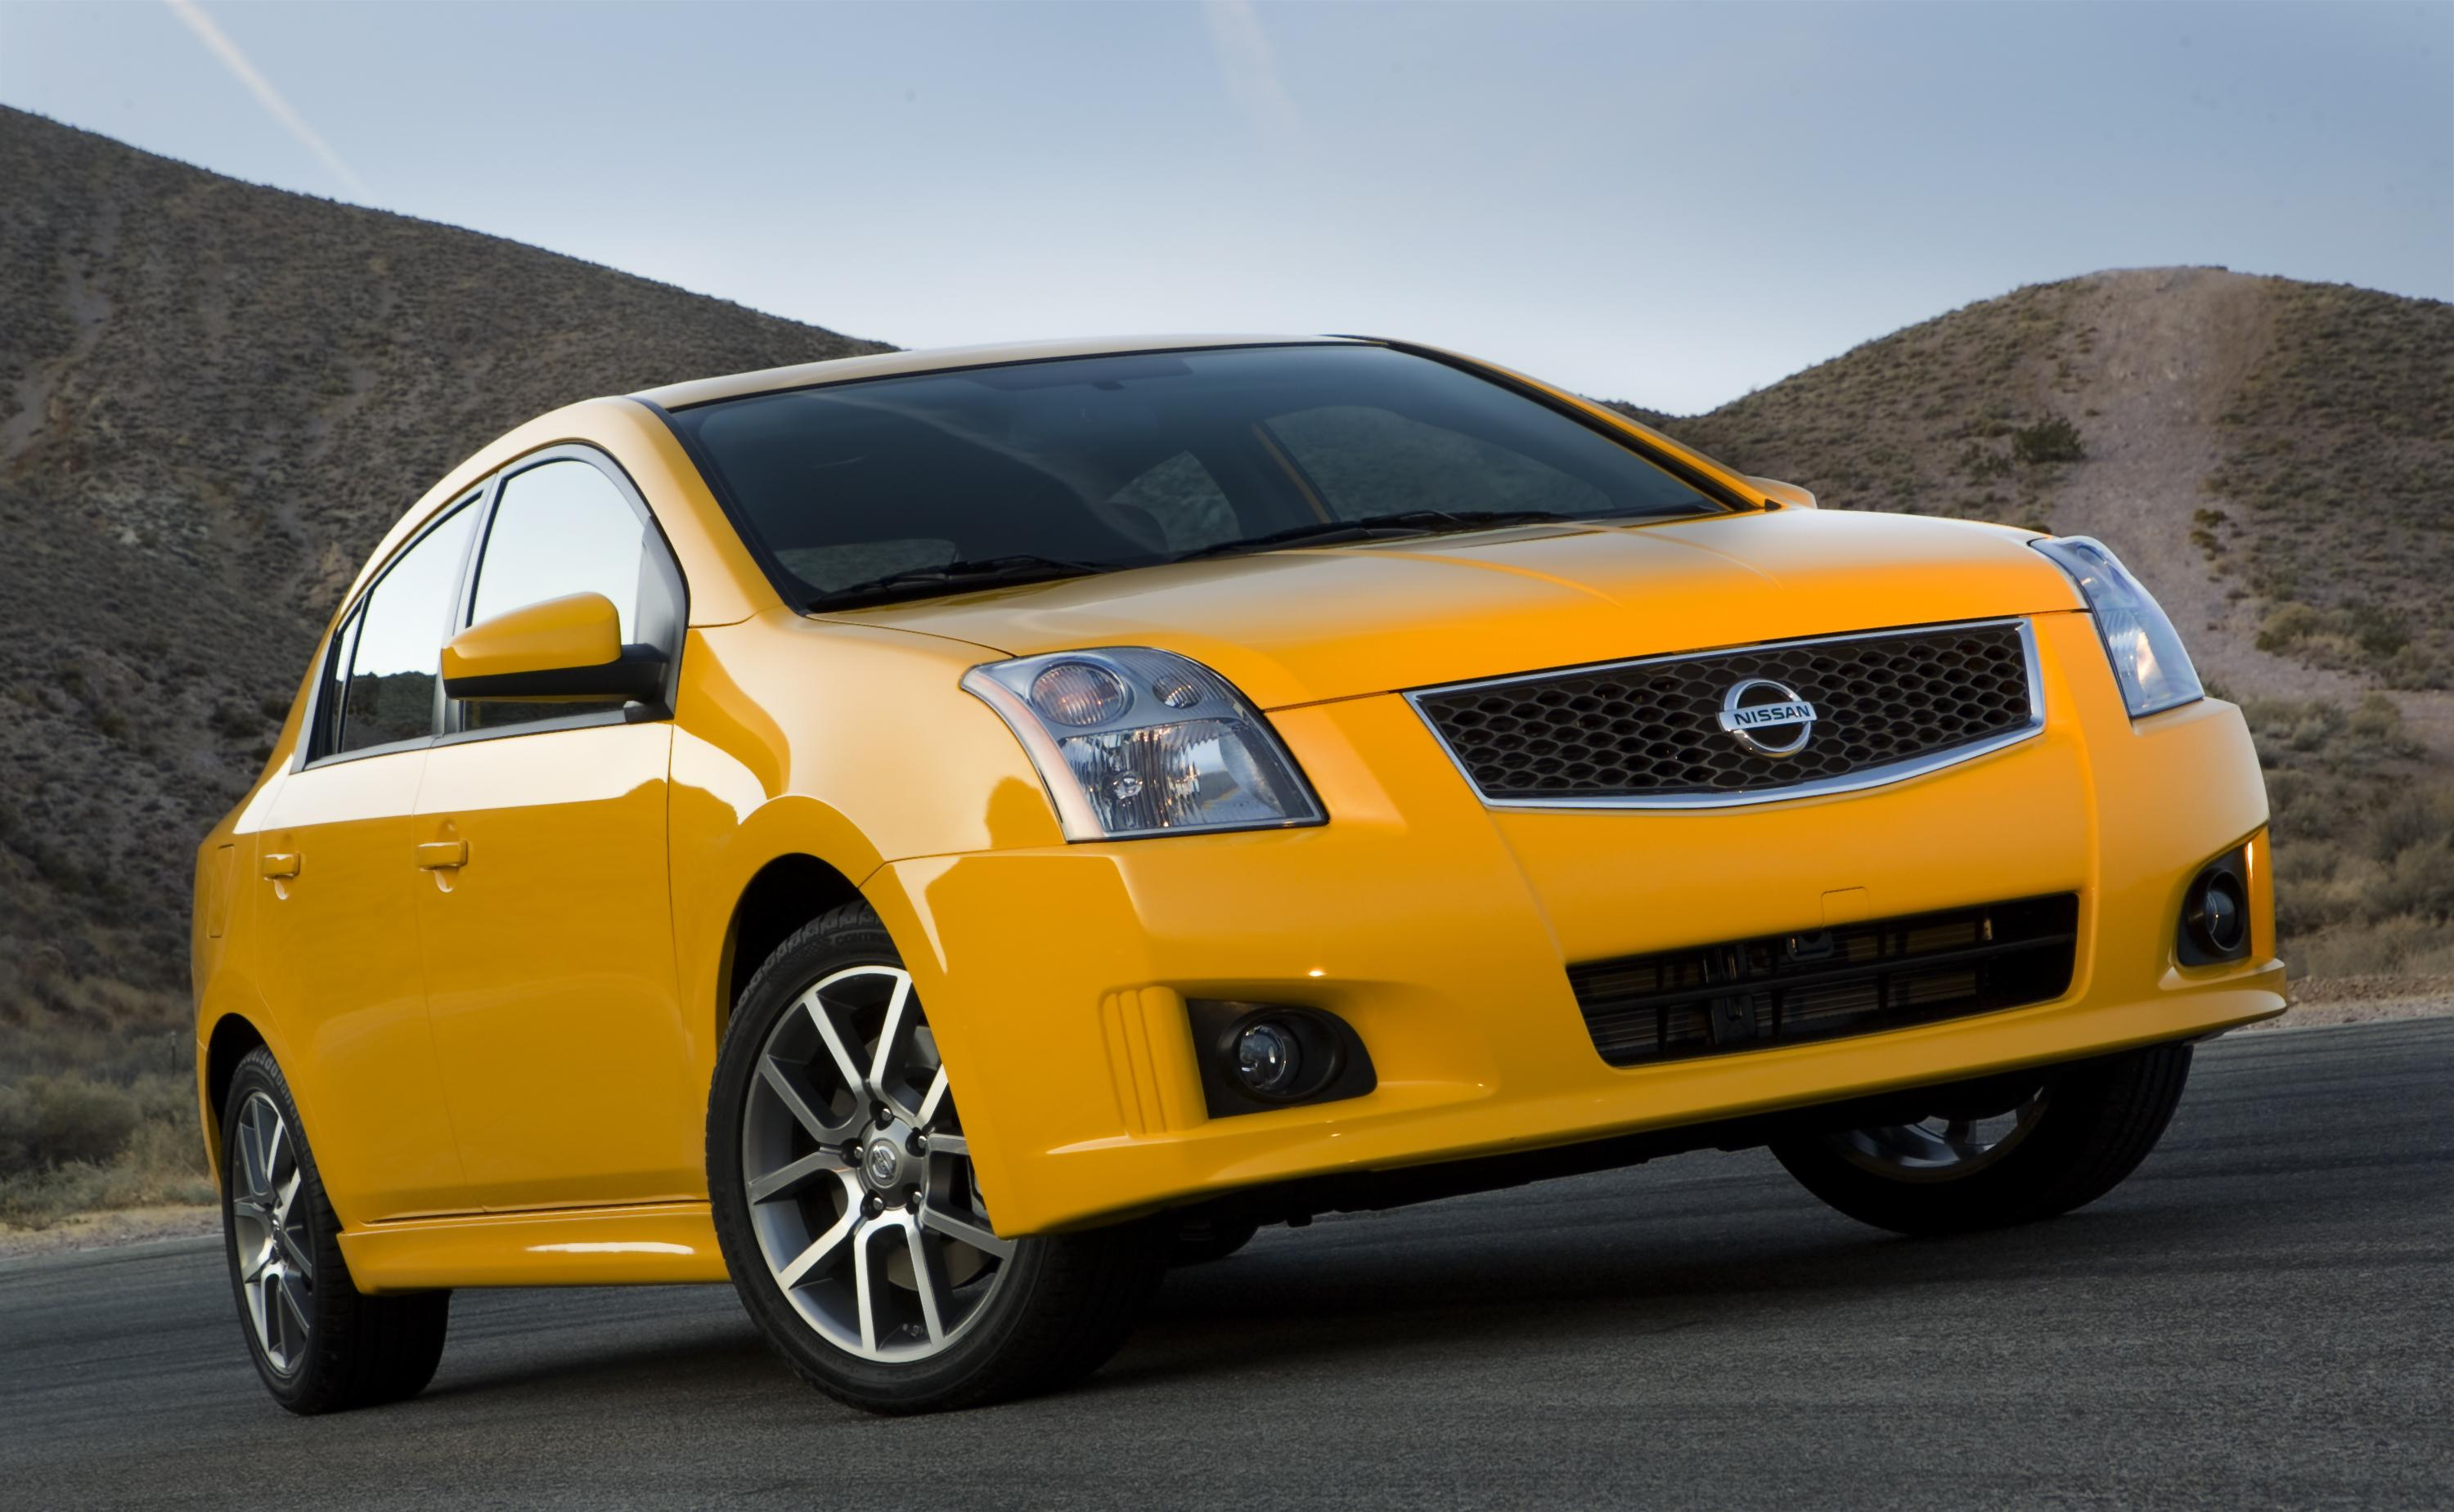 2007 nissan sentra se r pricing announced top speed. Black Bedroom Furniture Sets. Home Design Ideas